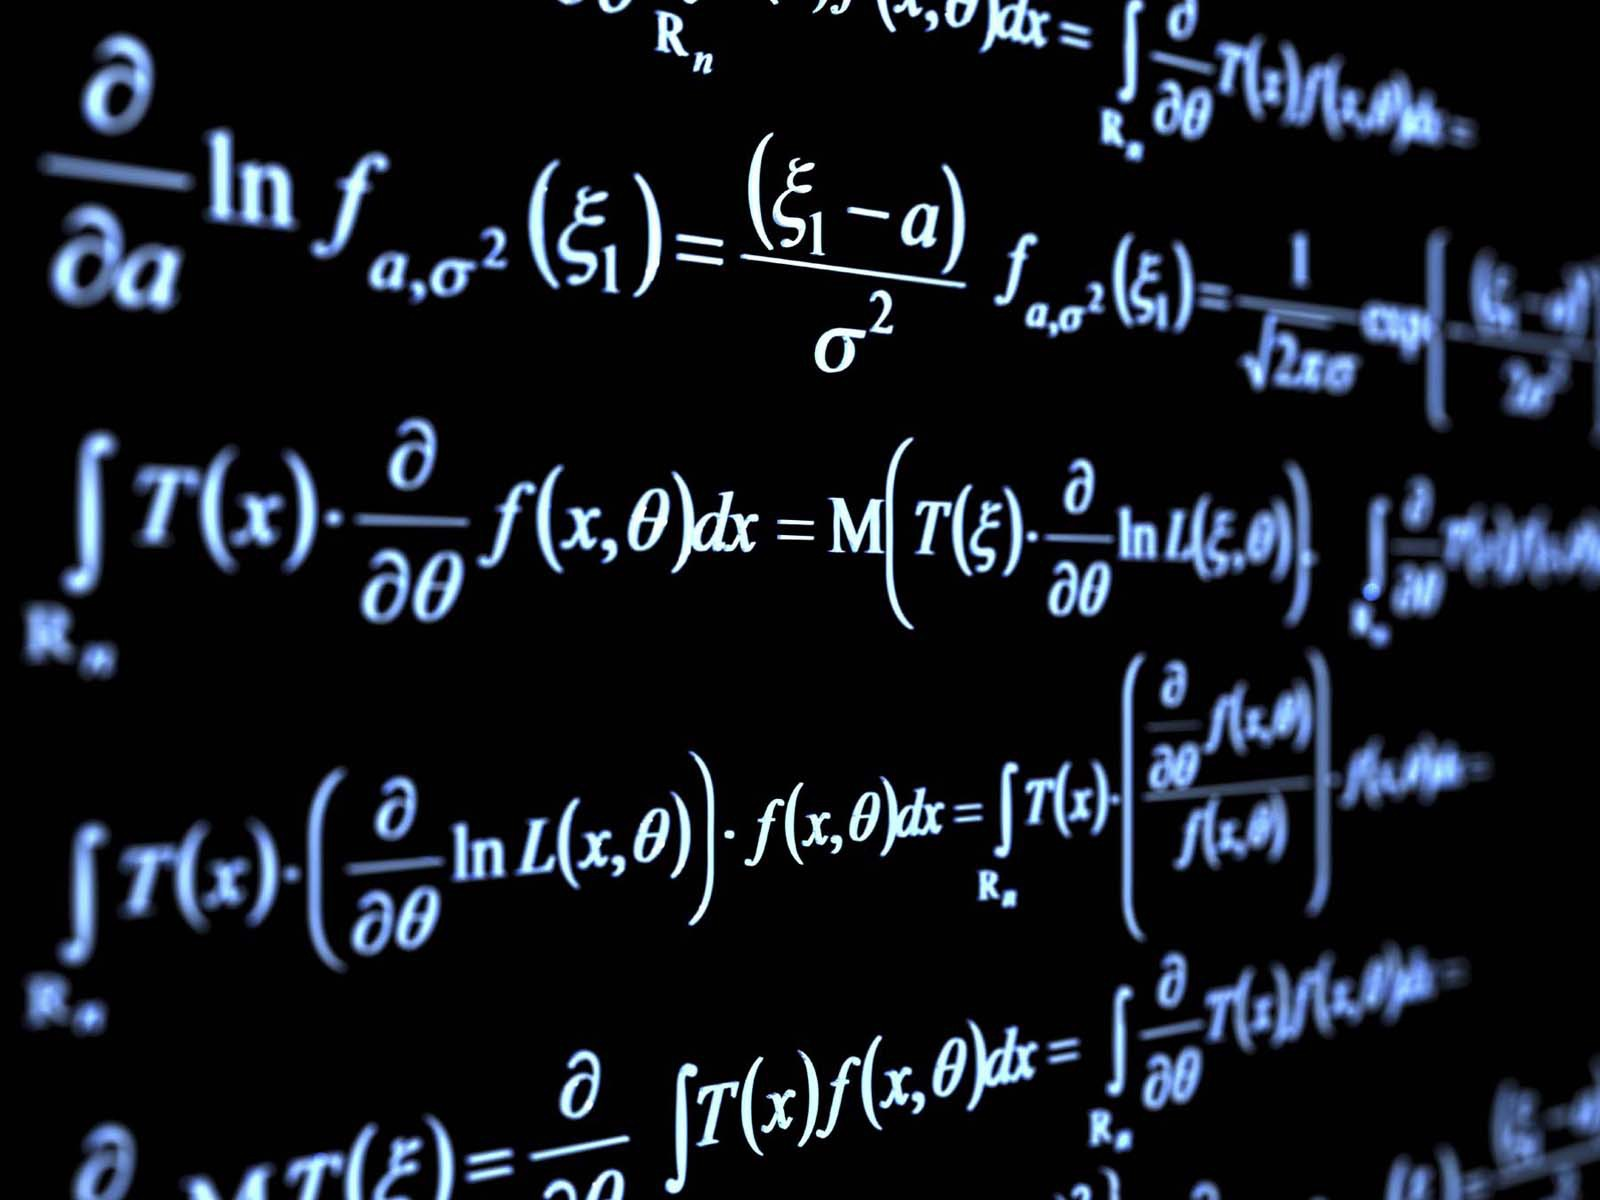 Could you offer some math help?